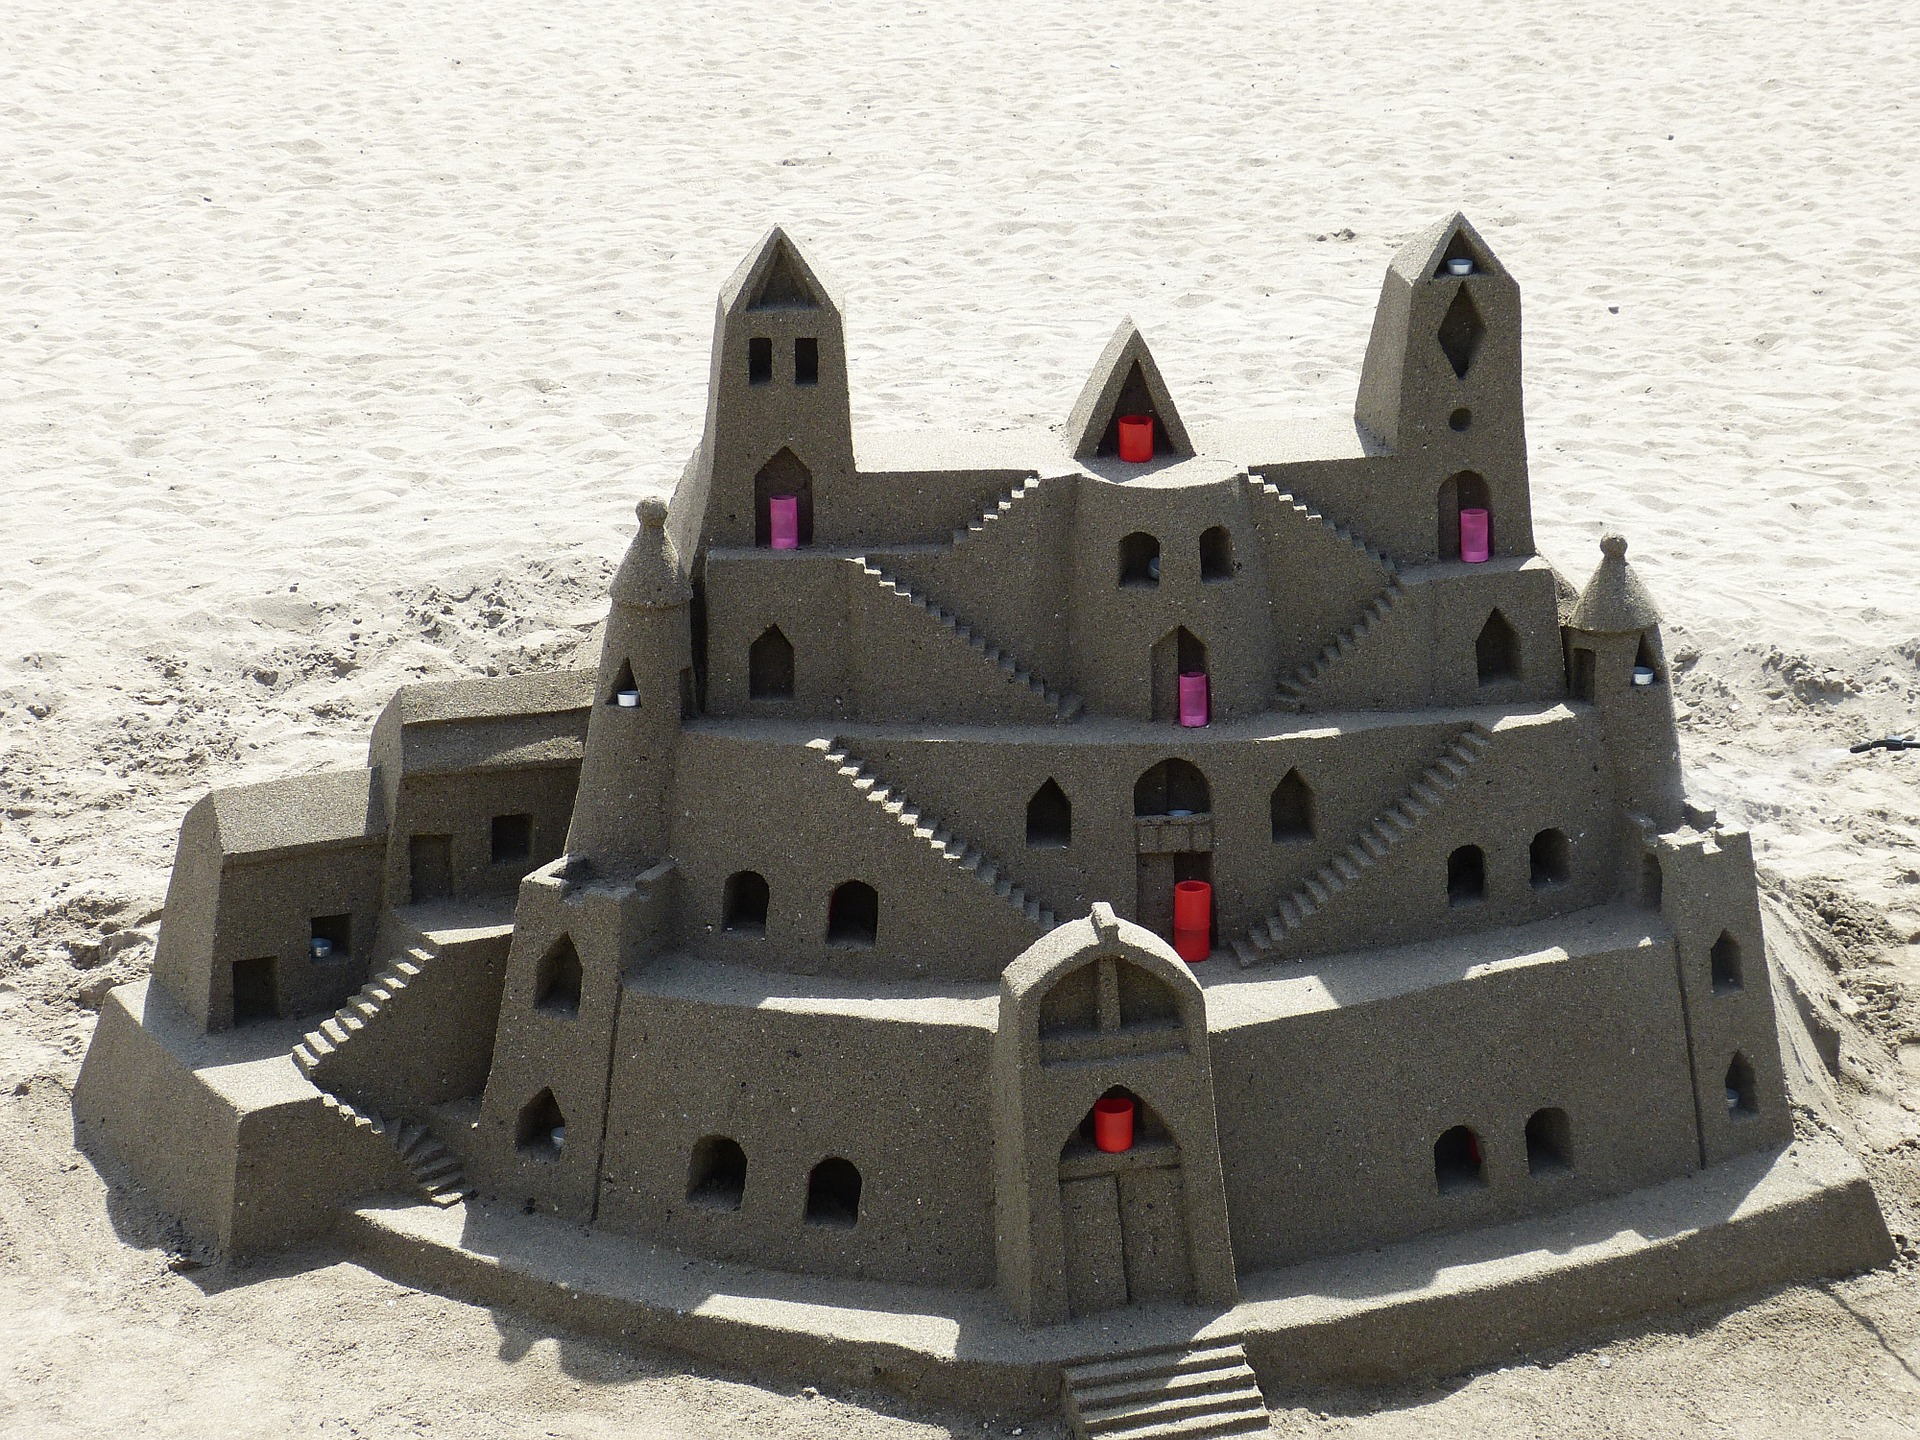 Smooth sandcastle 3 levels with windows